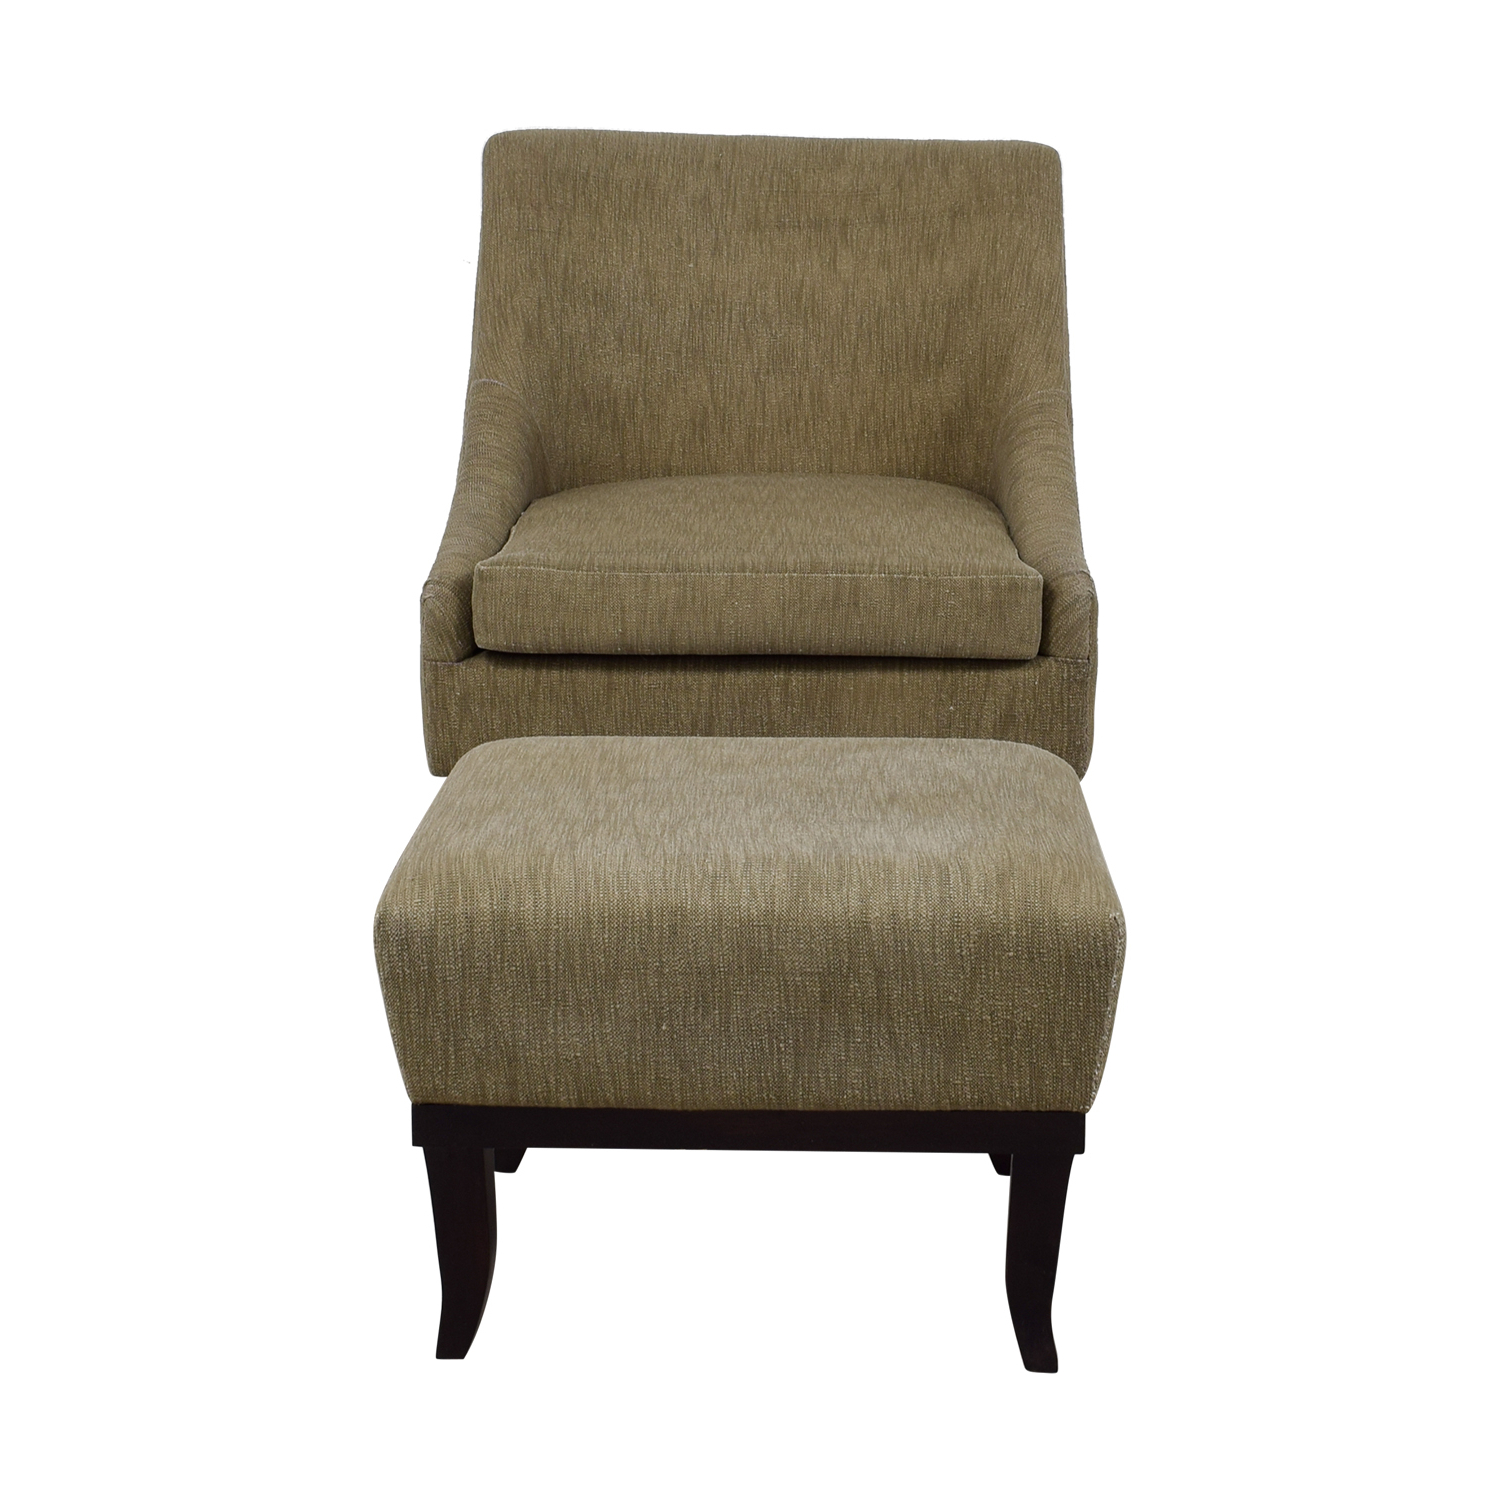 [%83% Off – Manor And Mews Manor And Mews Cary Grey Armchair And Foot Pertaining To 2018 Manor Grey Swivel Chairs|manor Grey Swivel Chairs Throughout Newest 83% Off – Manor And Mews Manor And Mews Cary Grey Armchair And Foot|most Recent Manor Grey Swivel Chairs In 83% Off – Manor And Mews Manor And Mews Cary Grey Armchair And Foot|favorite 83% Off – Manor And Mews Manor And Mews Cary Grey Armchair And Foot Inside Manor Grey Swivel Chairs%] (View 11 of 20)